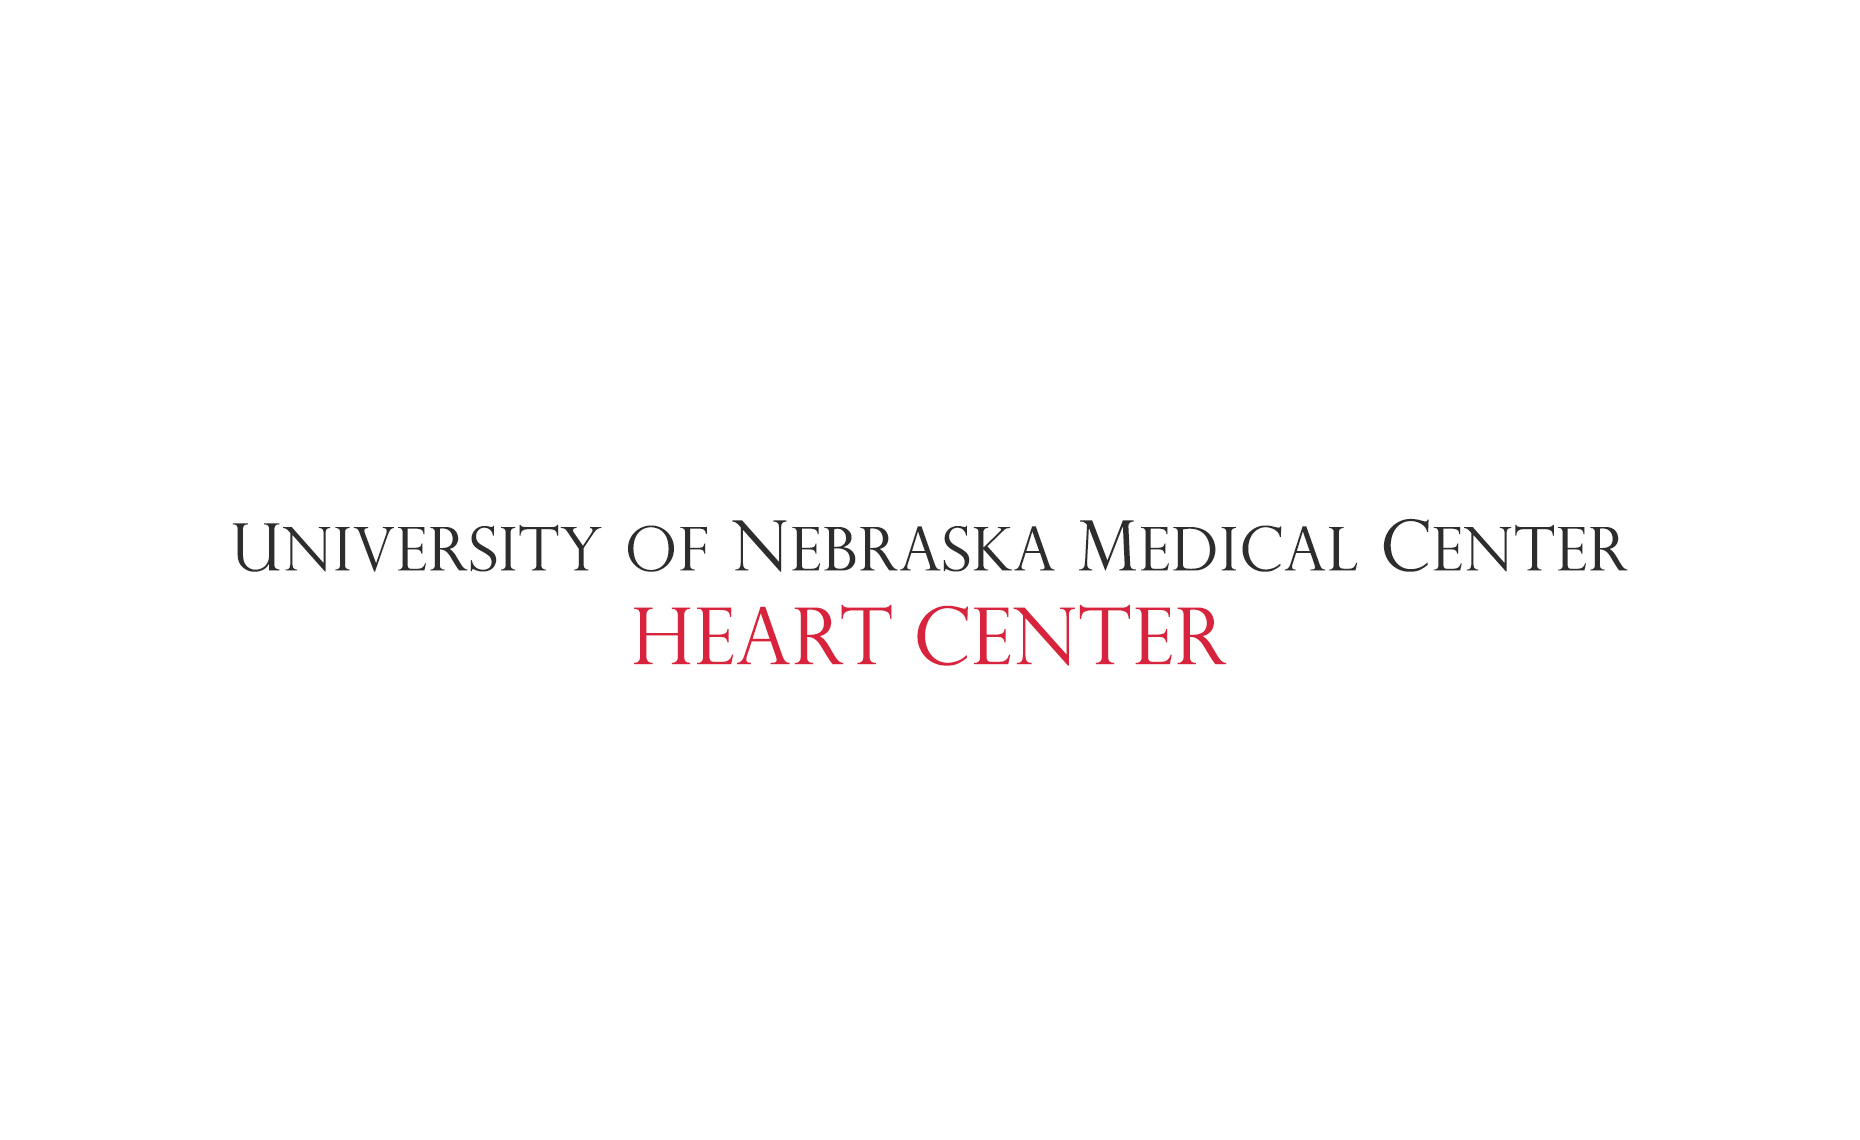 UNMC Heart Center | Laurie and Charles Photographs